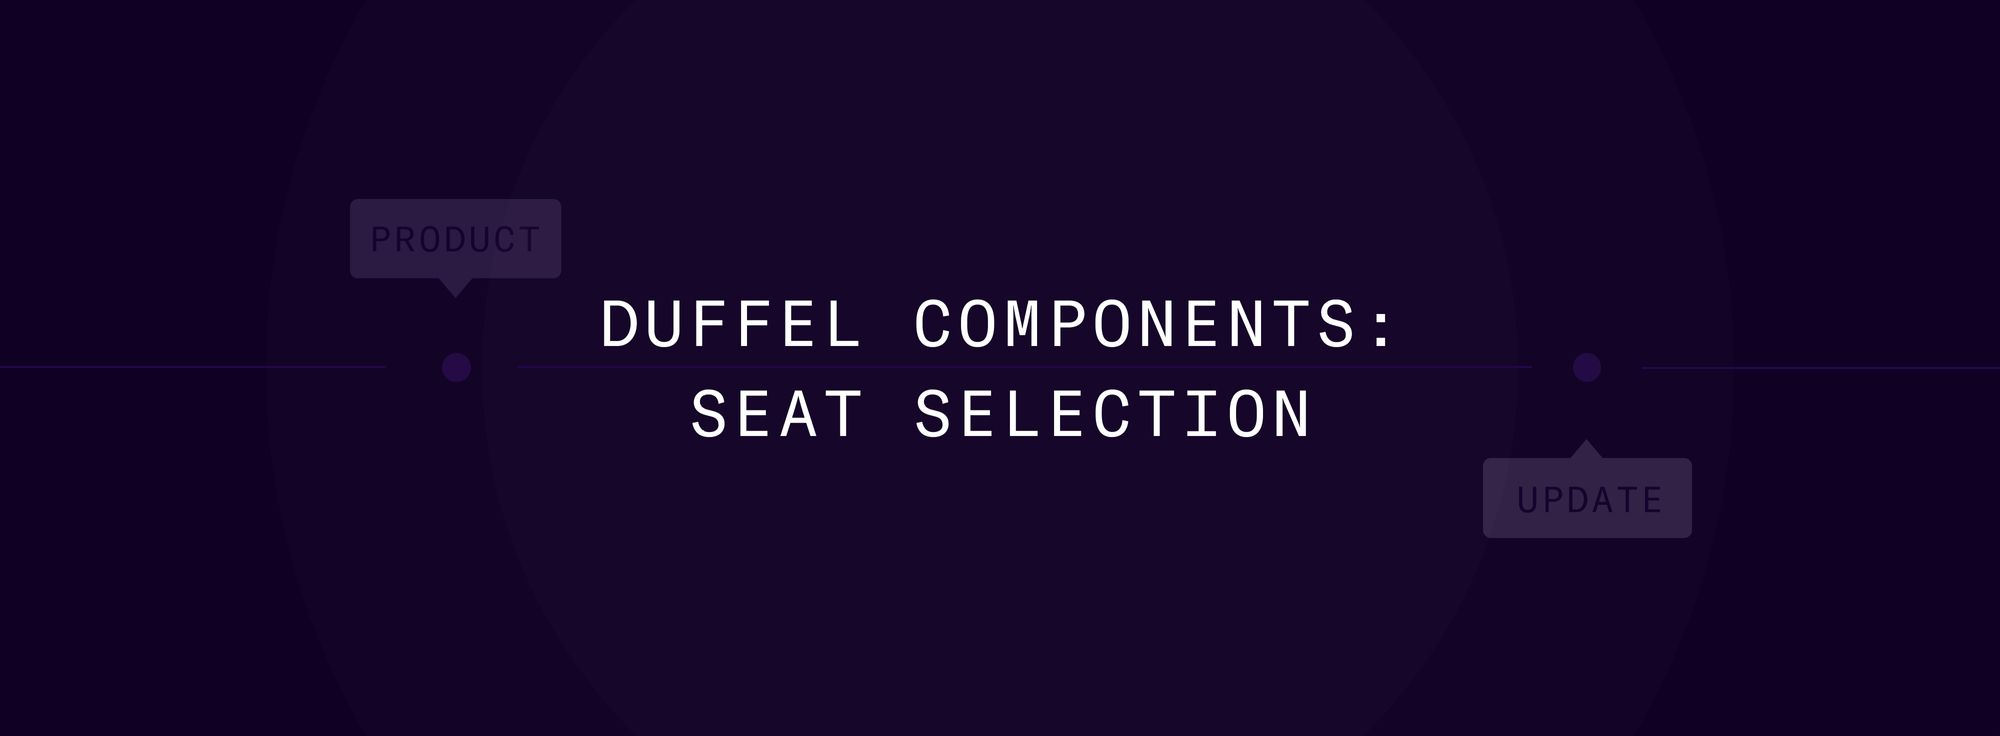 Duffel Components: Build beautiful and intuitive flight booking experiences